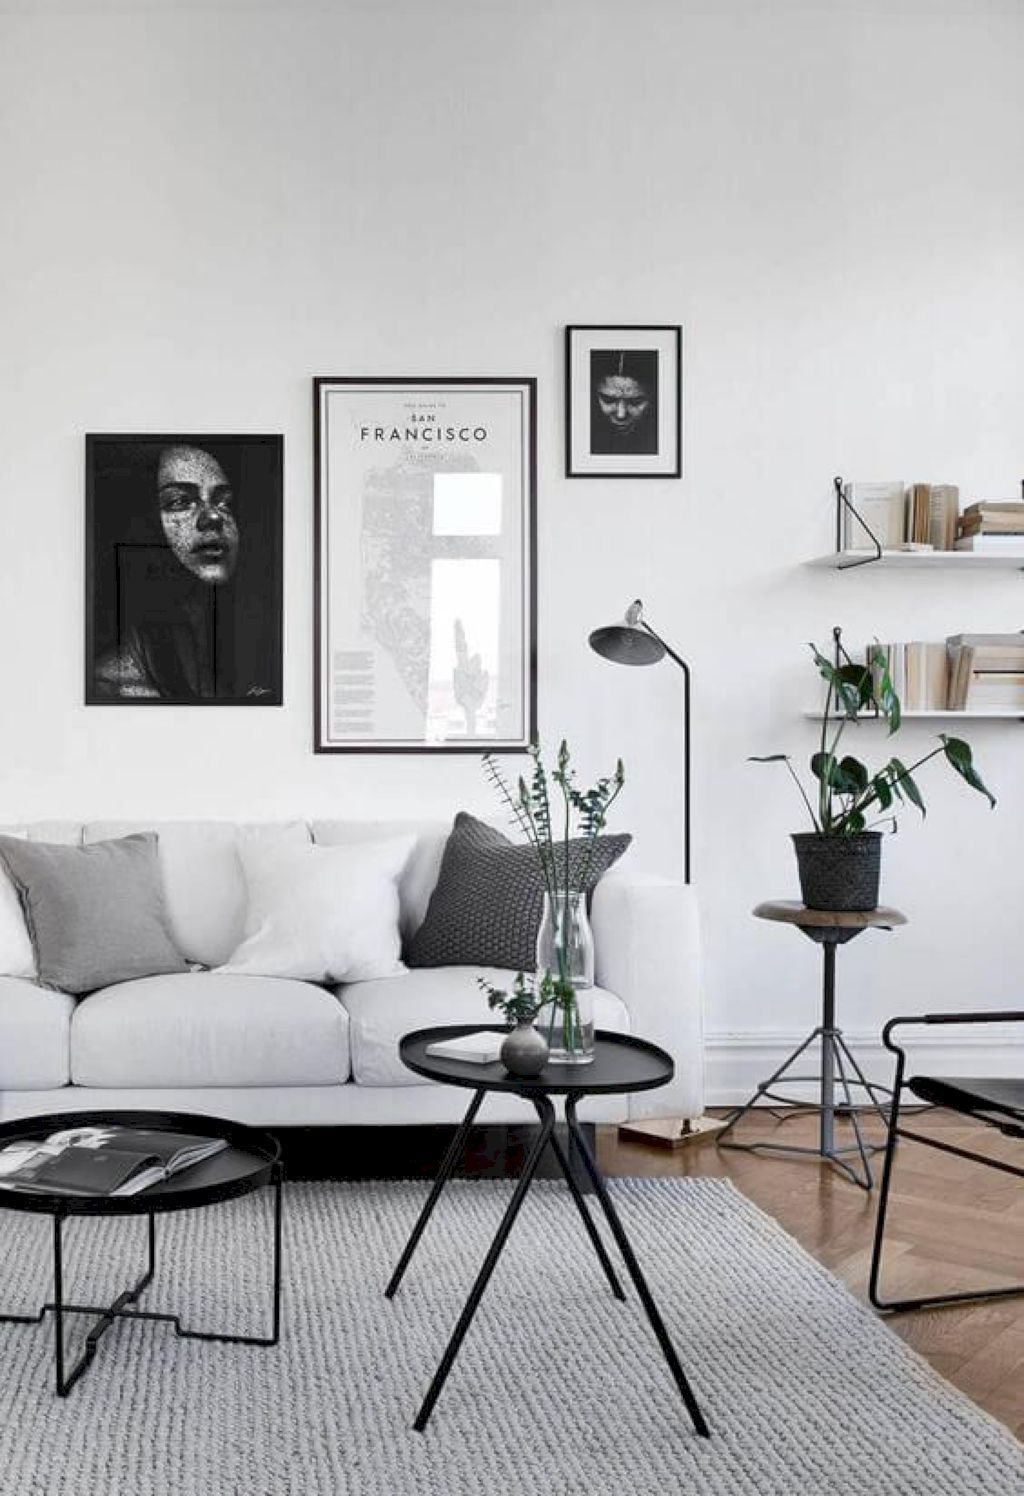 Awesome 45 Best Minimalist Living Room Decor Ideas Https://insidedecor.net/